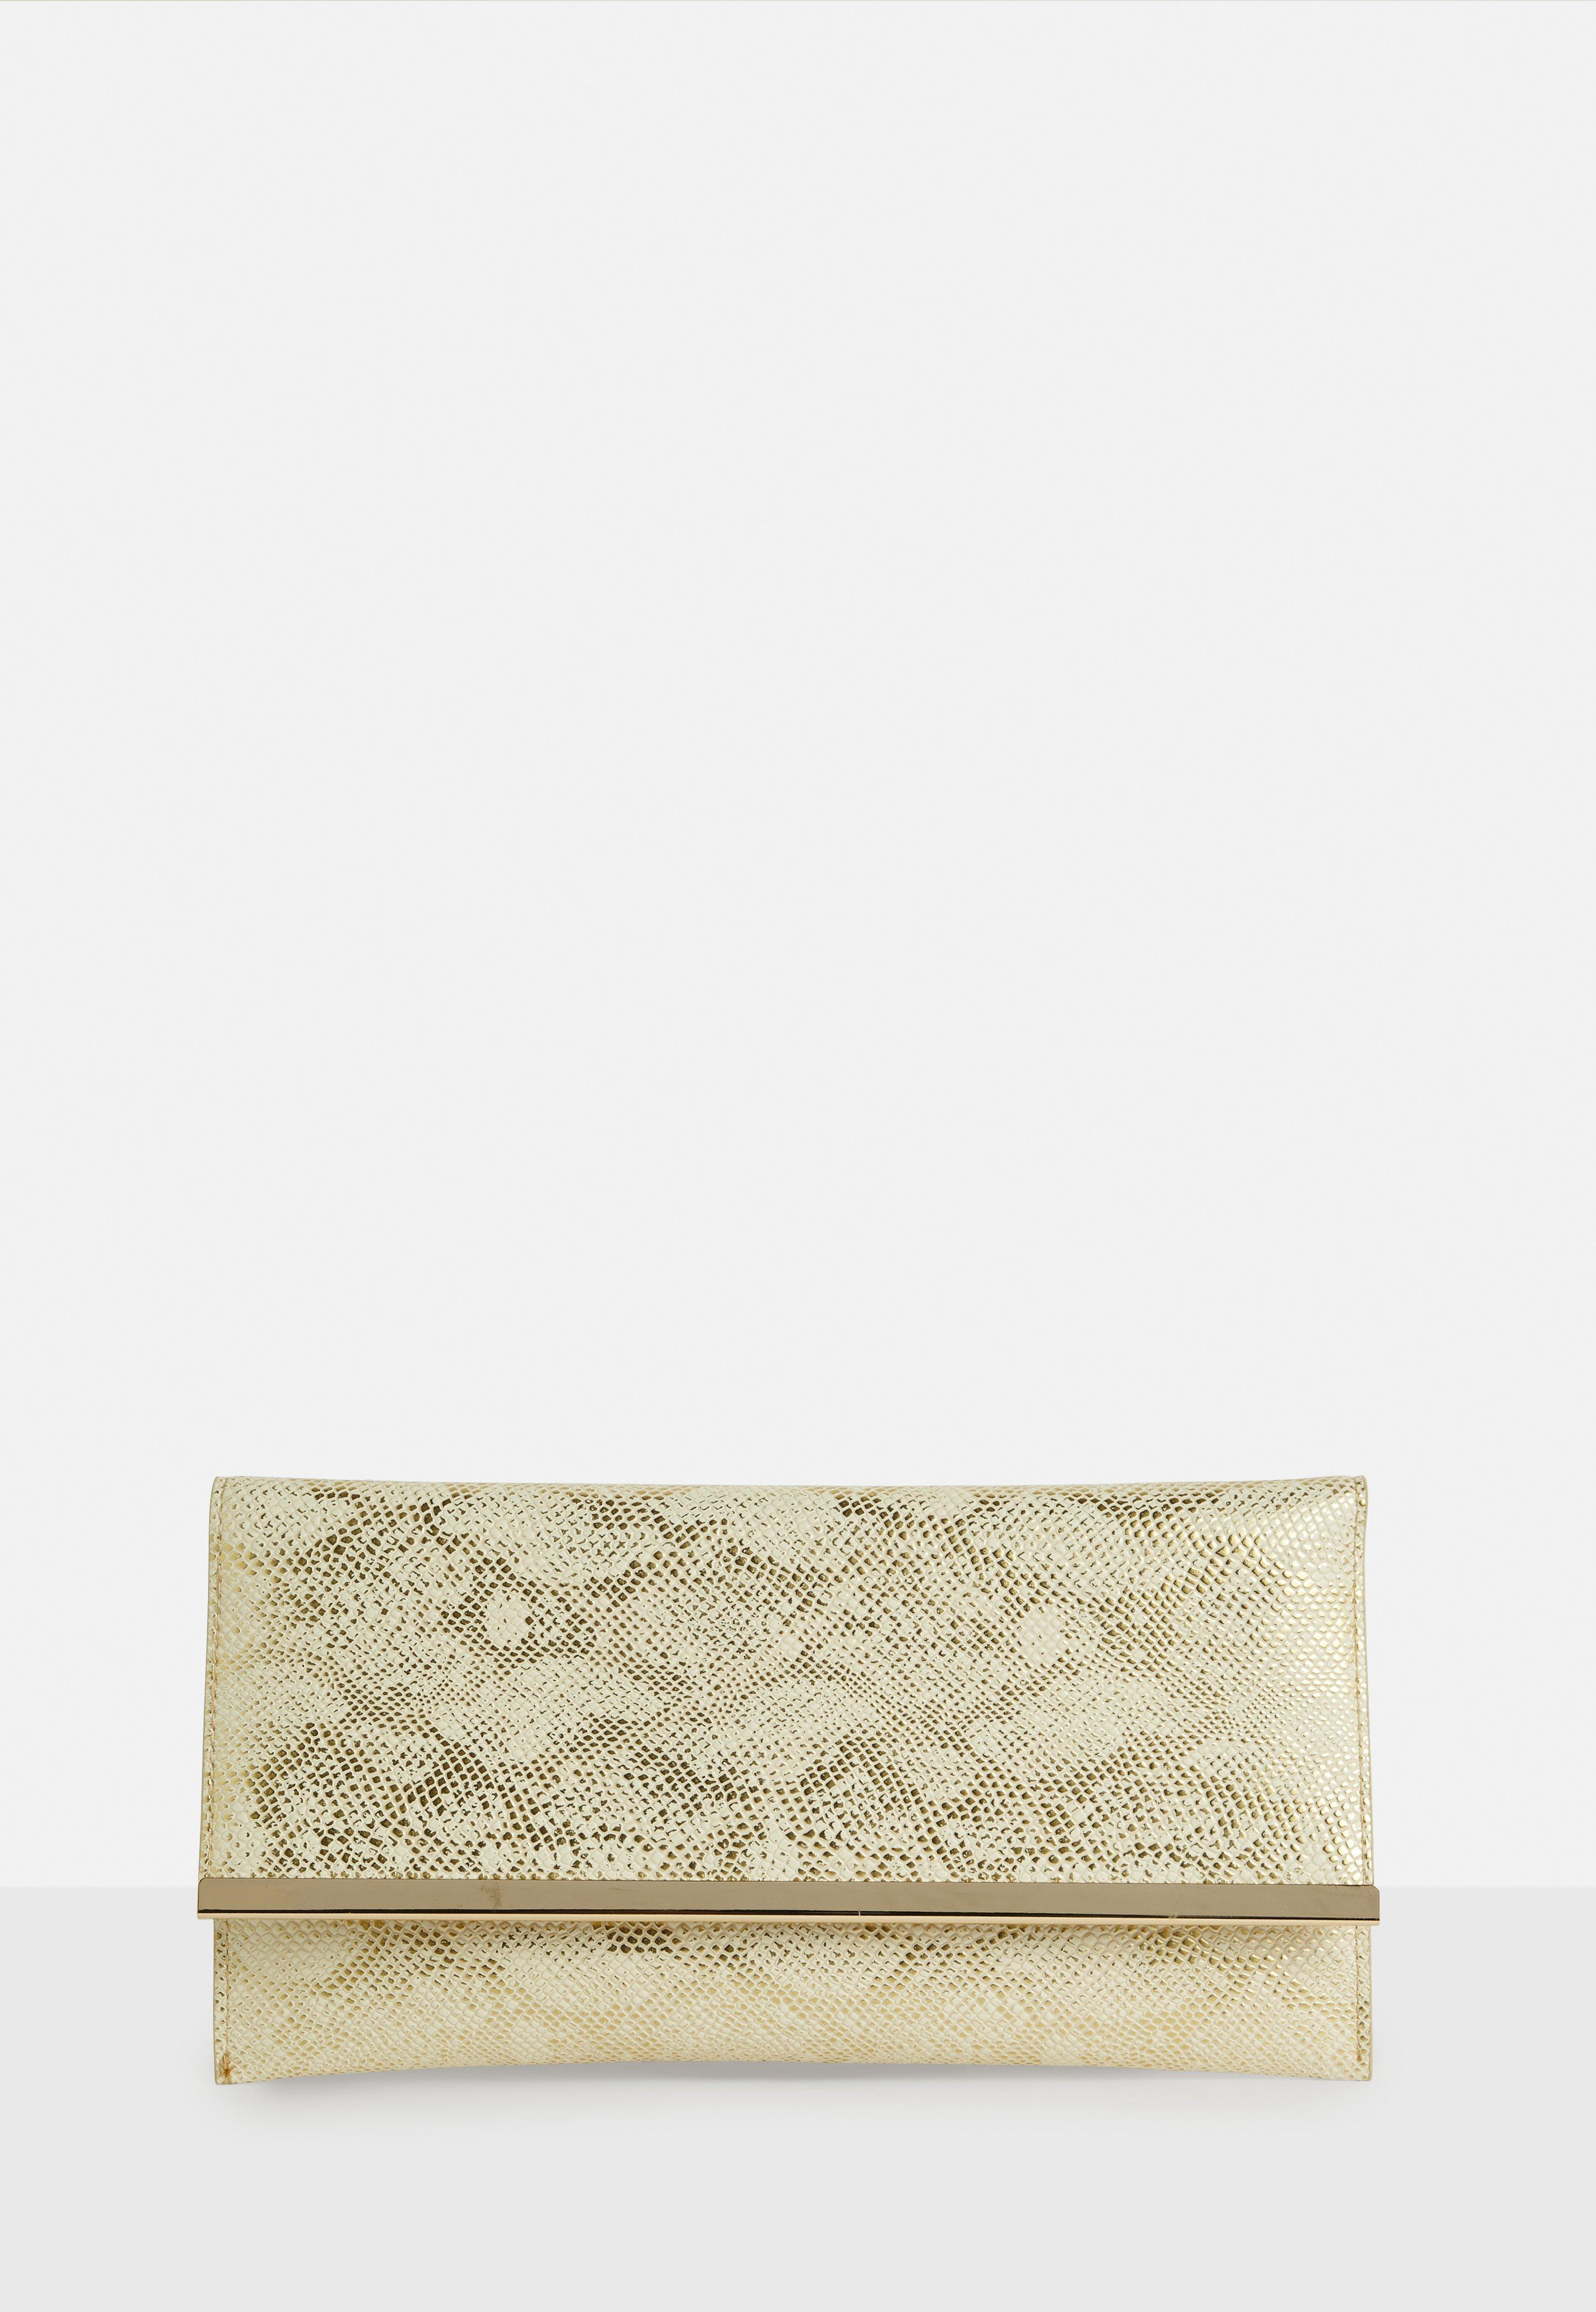 Lyst - Missguided Gold Faux Leather Metal Trim Clutch Bag in Metallic 7bf089f4b773d